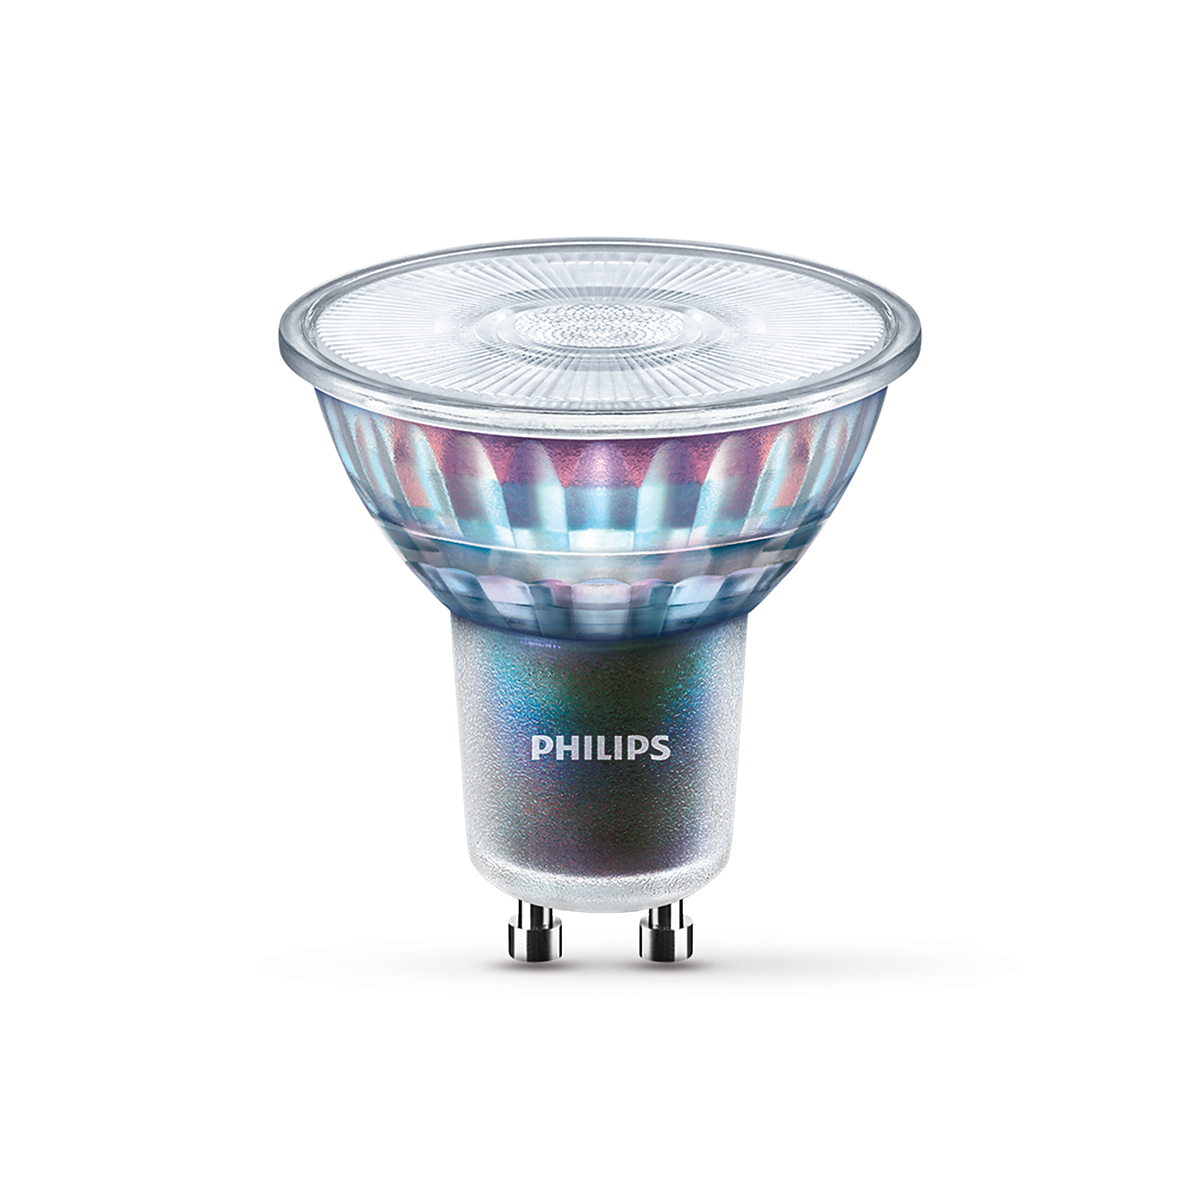 Philips Master LED ExpertColor 3.9 35W GU10 927 25D ab 5,90